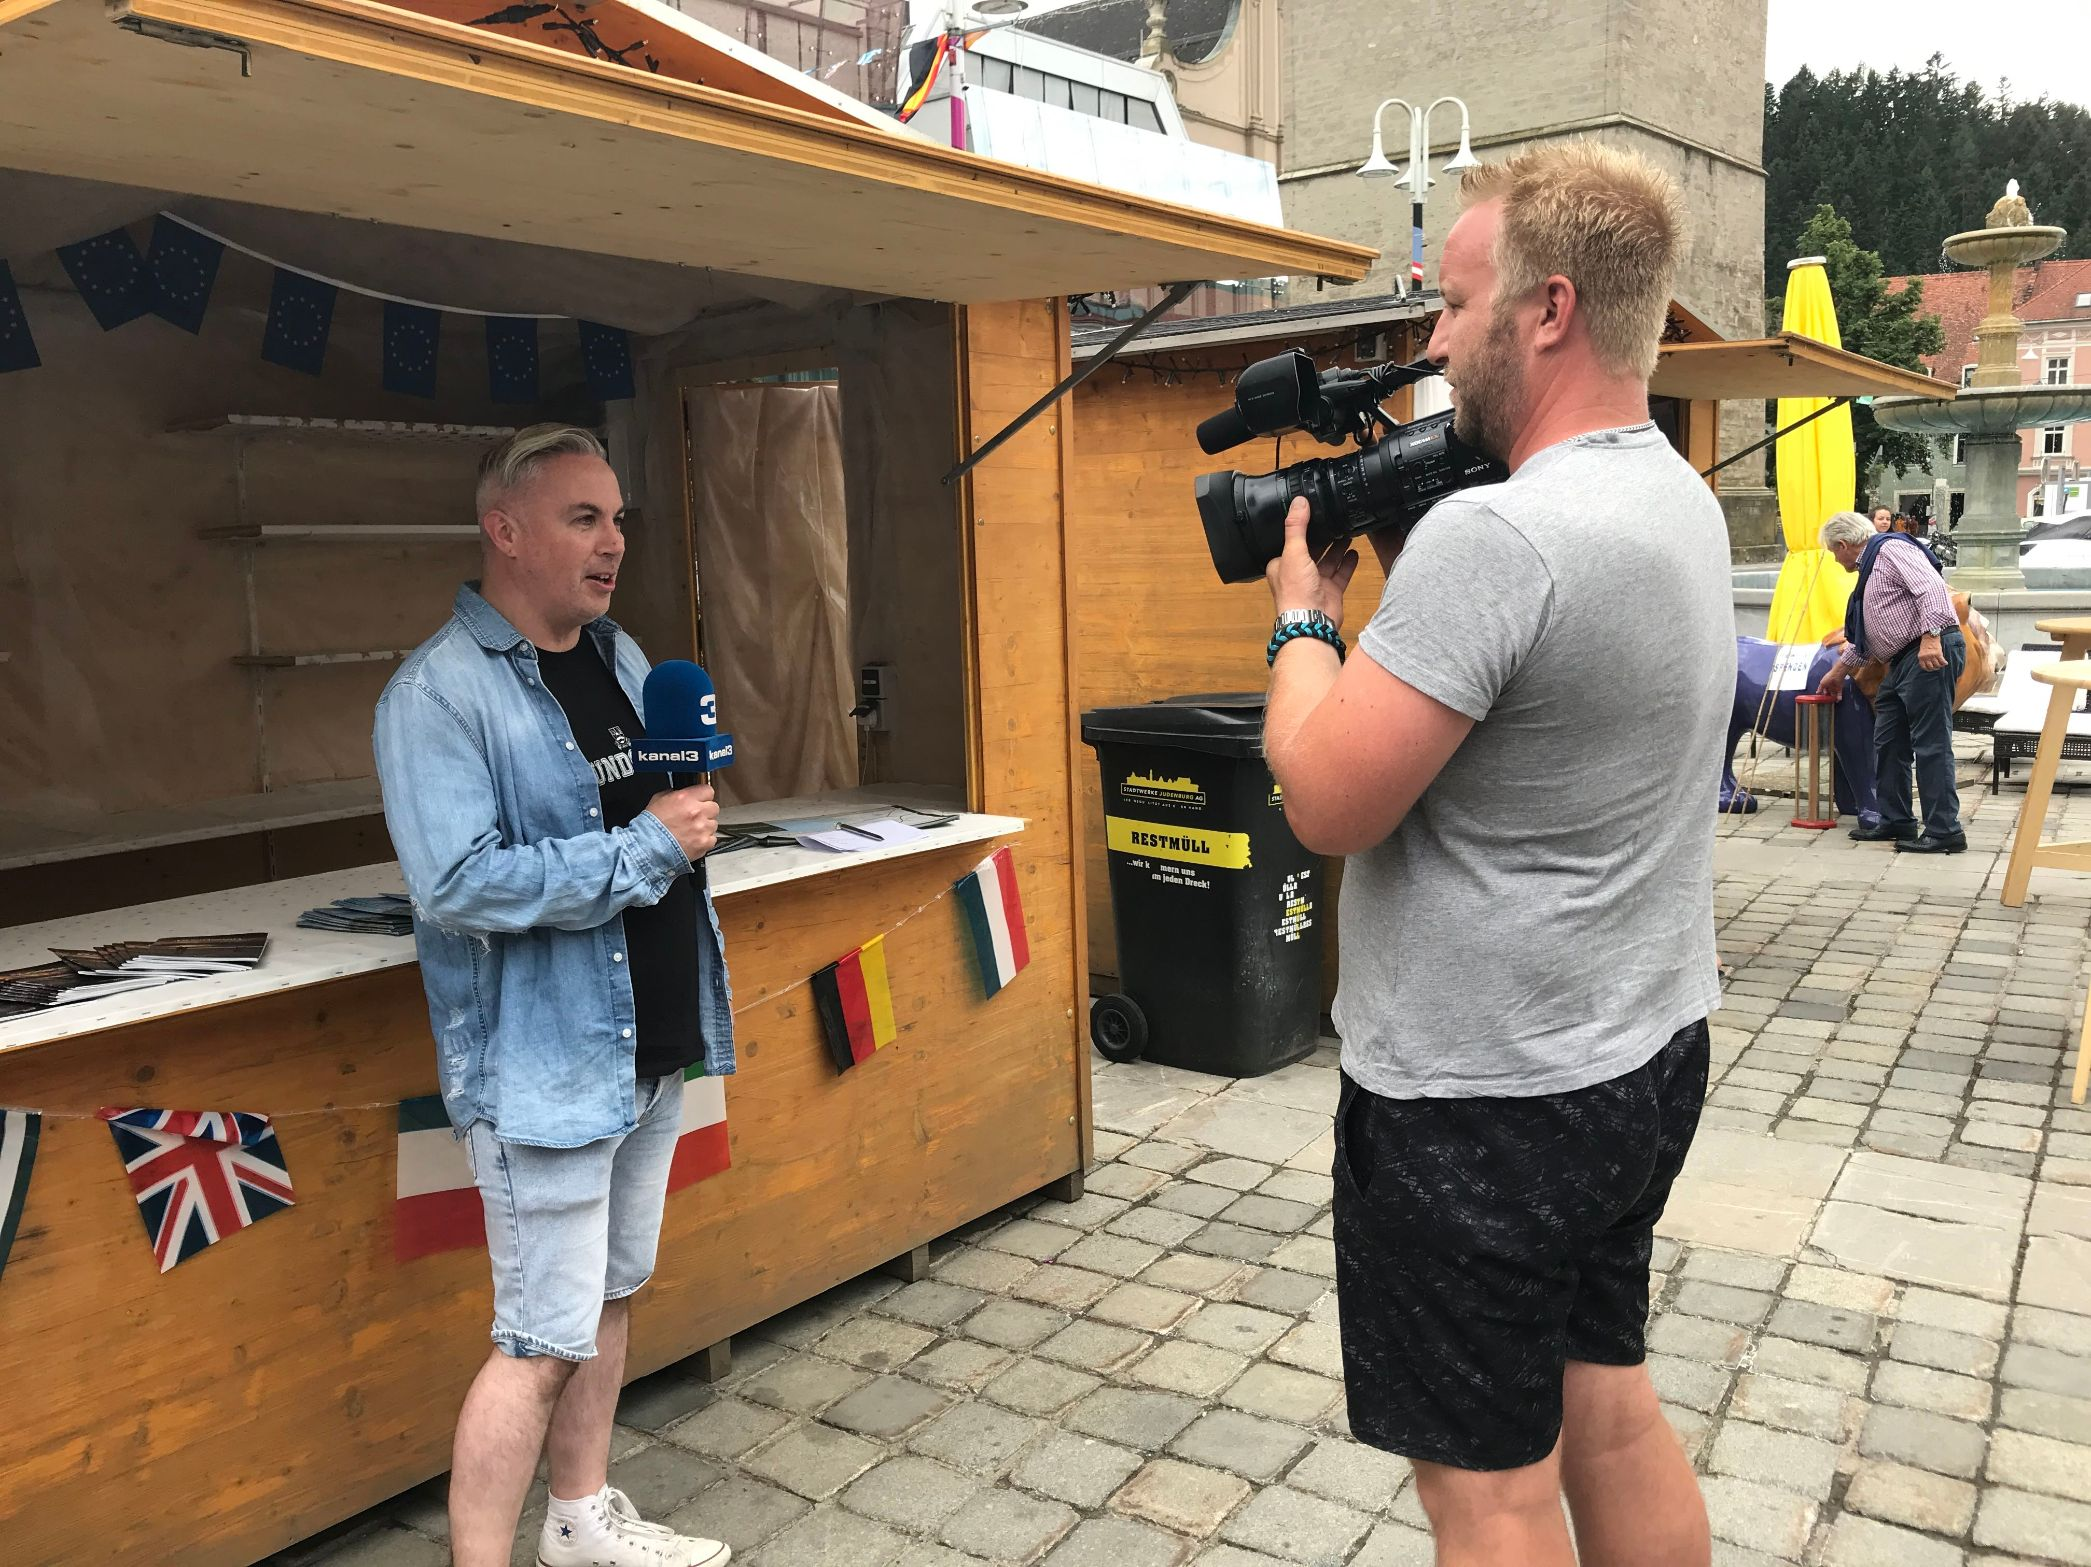 Shane Smyth being interviewed for Austrian national television